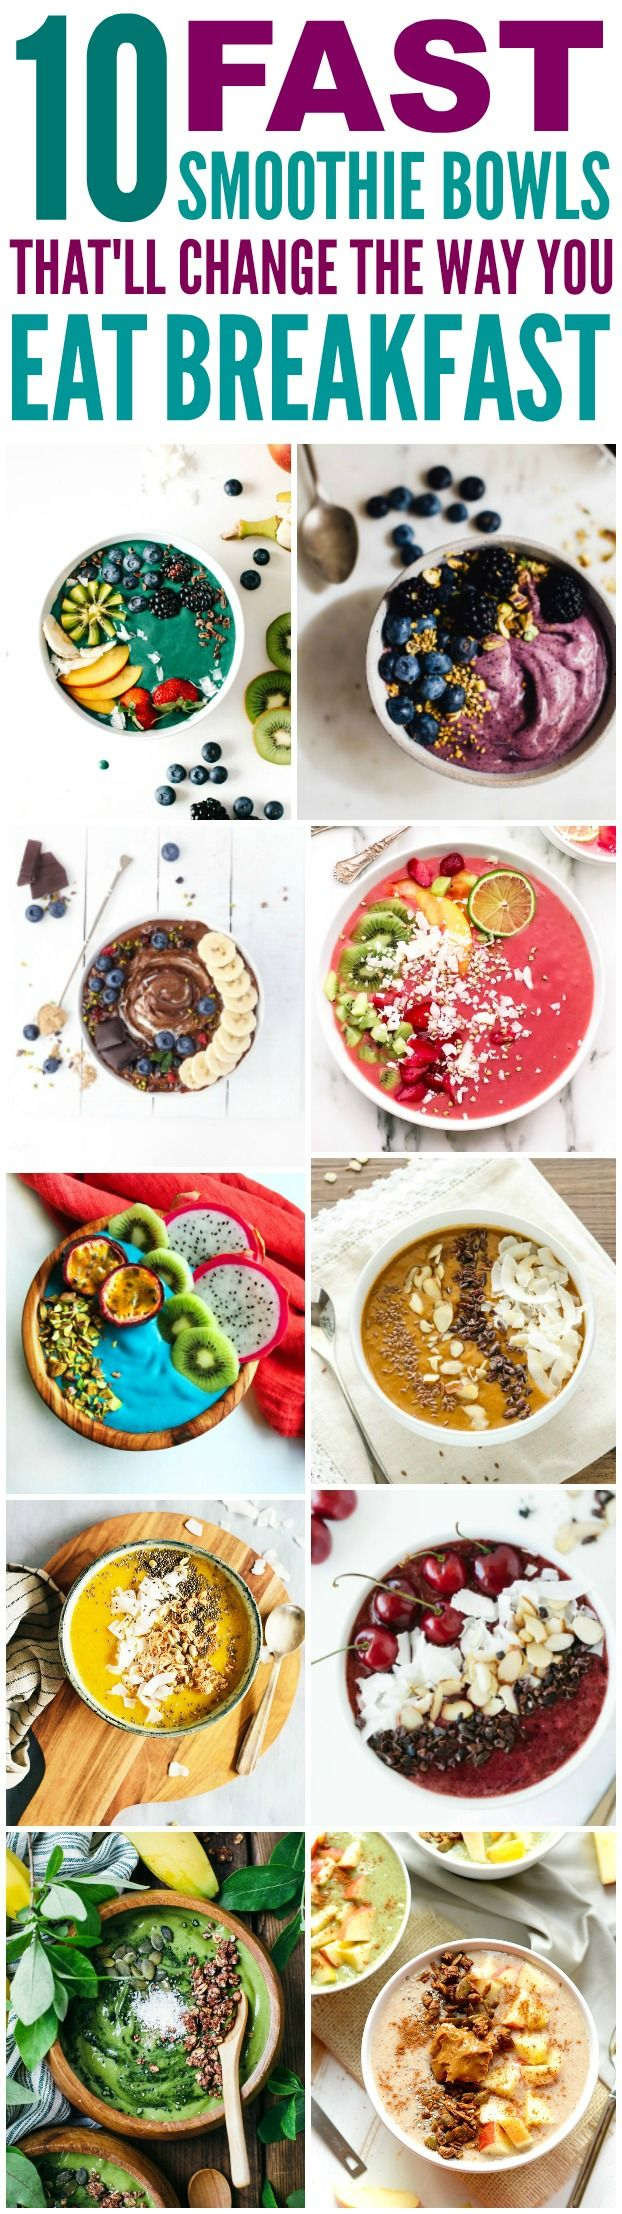 These 10 Super Healthy and delicious smoothie bowls are THE BEST! I'm so happy I found these GREAT recipes! Now I have breakfast ideas that'll make my morning so much easier! Definitely pinning!